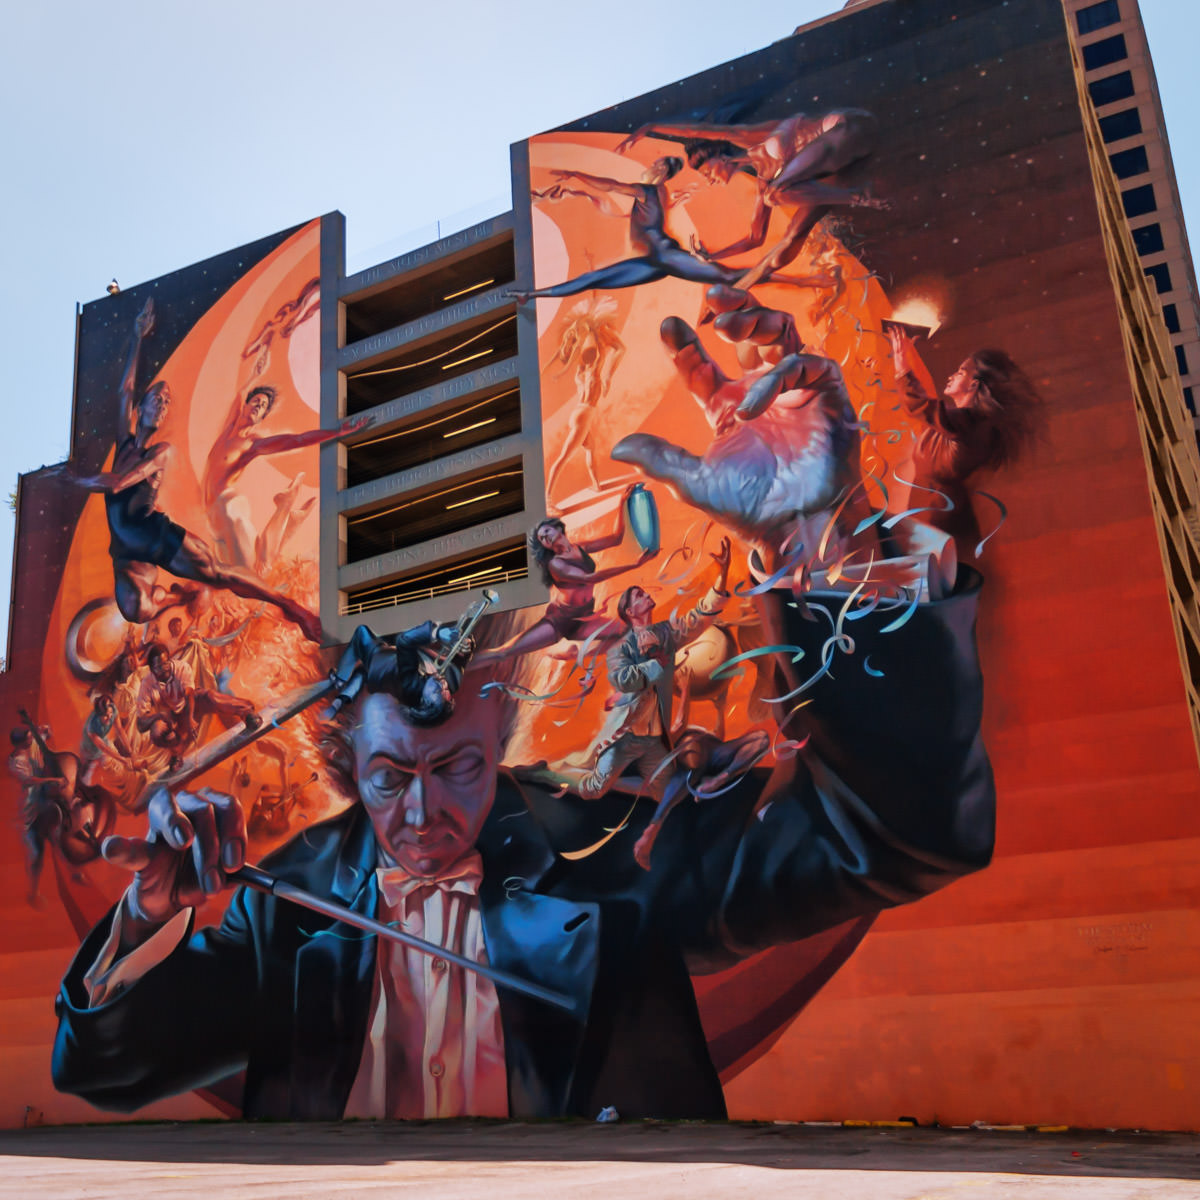 A gigantic mural on the side of a parking garage in Dallas' Arts District.